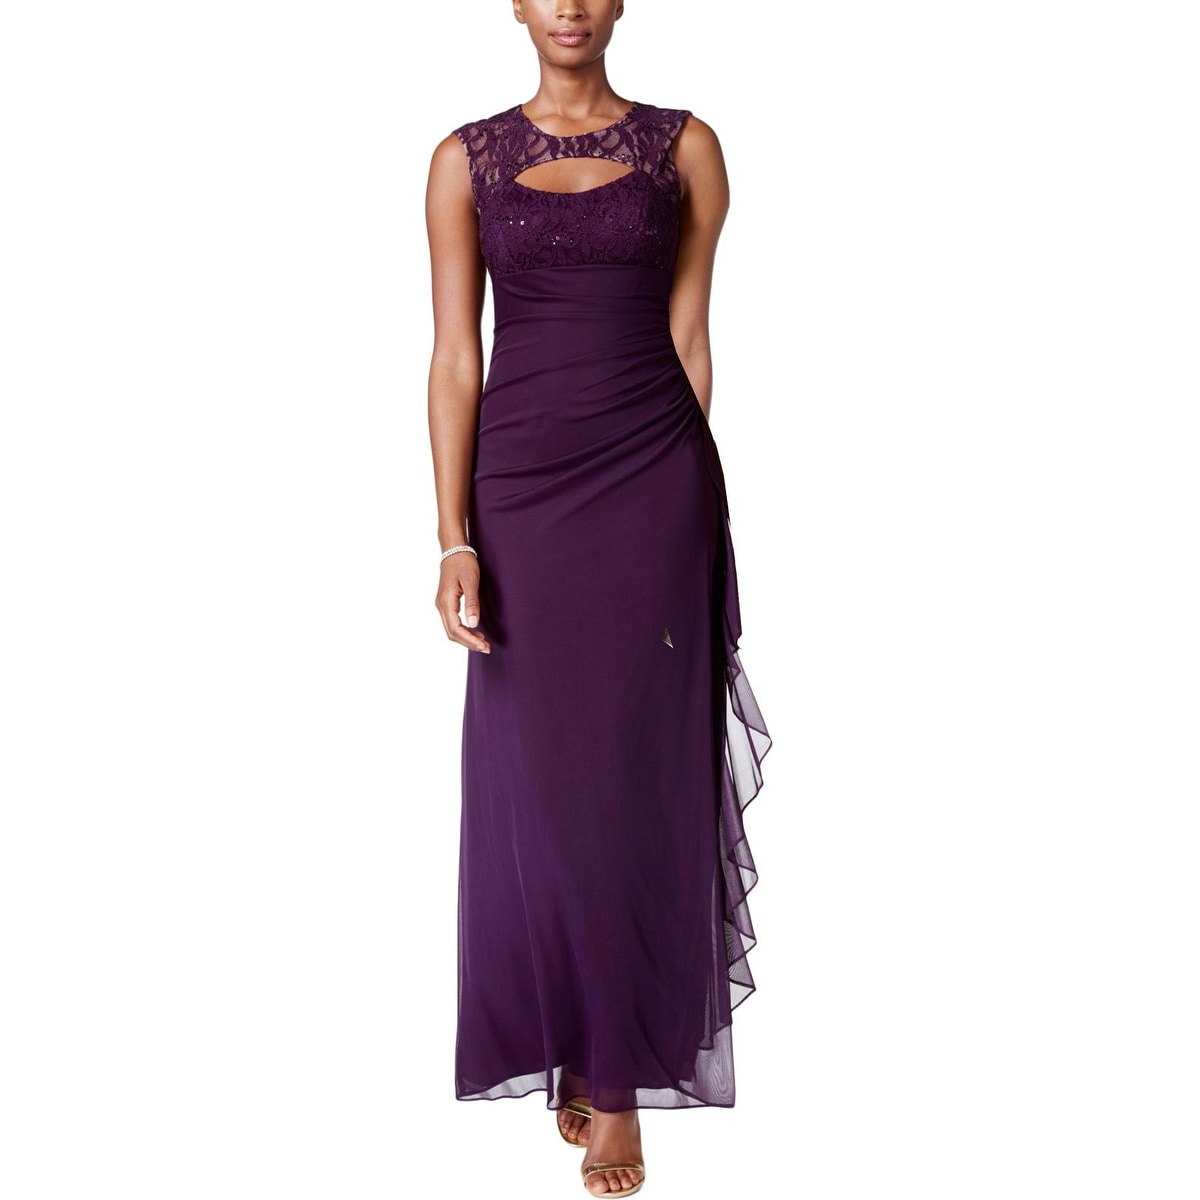 98af8164768f Betsy & Adam Dresses | Find Great Women's Clothing Deals Shopping at  Overstock